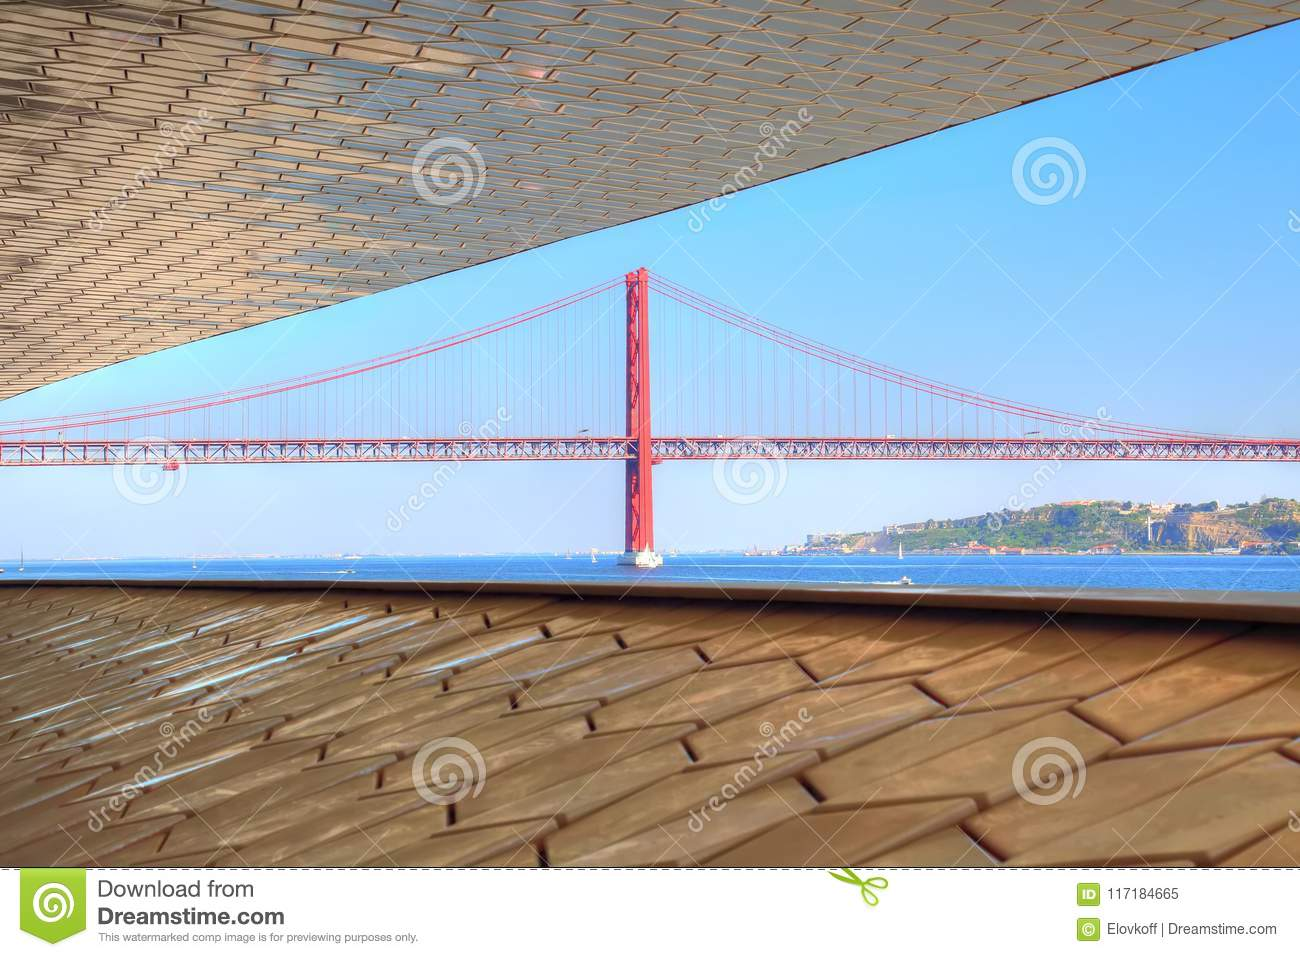 Lisbon, Landmark suspension 25 of April bridge